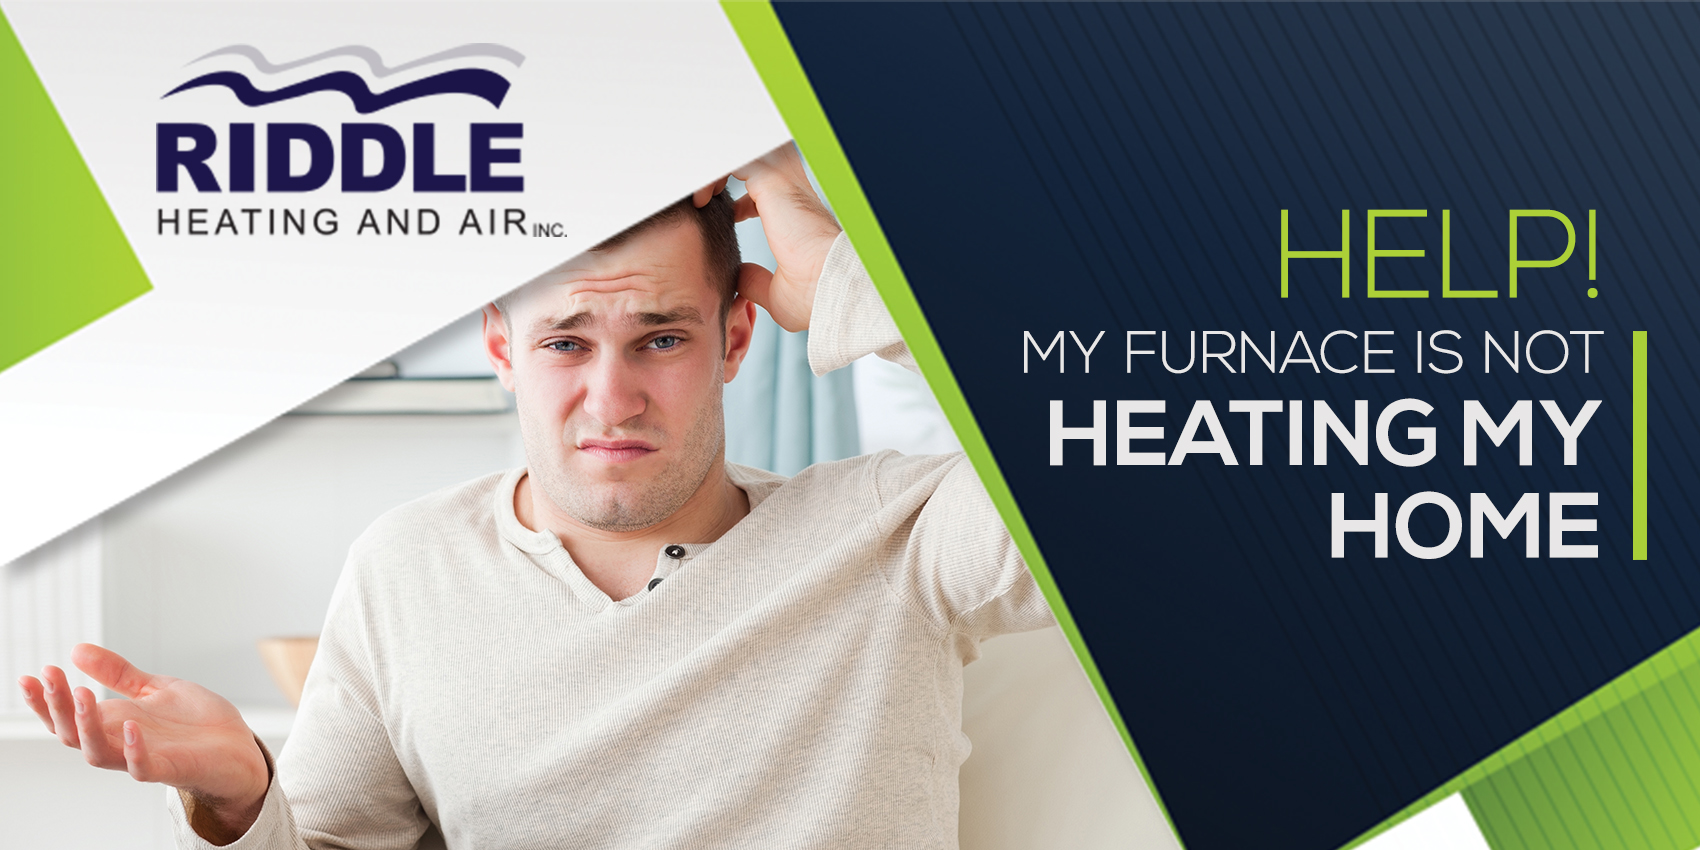 Help! My Furnace Is Not Heating My Home!